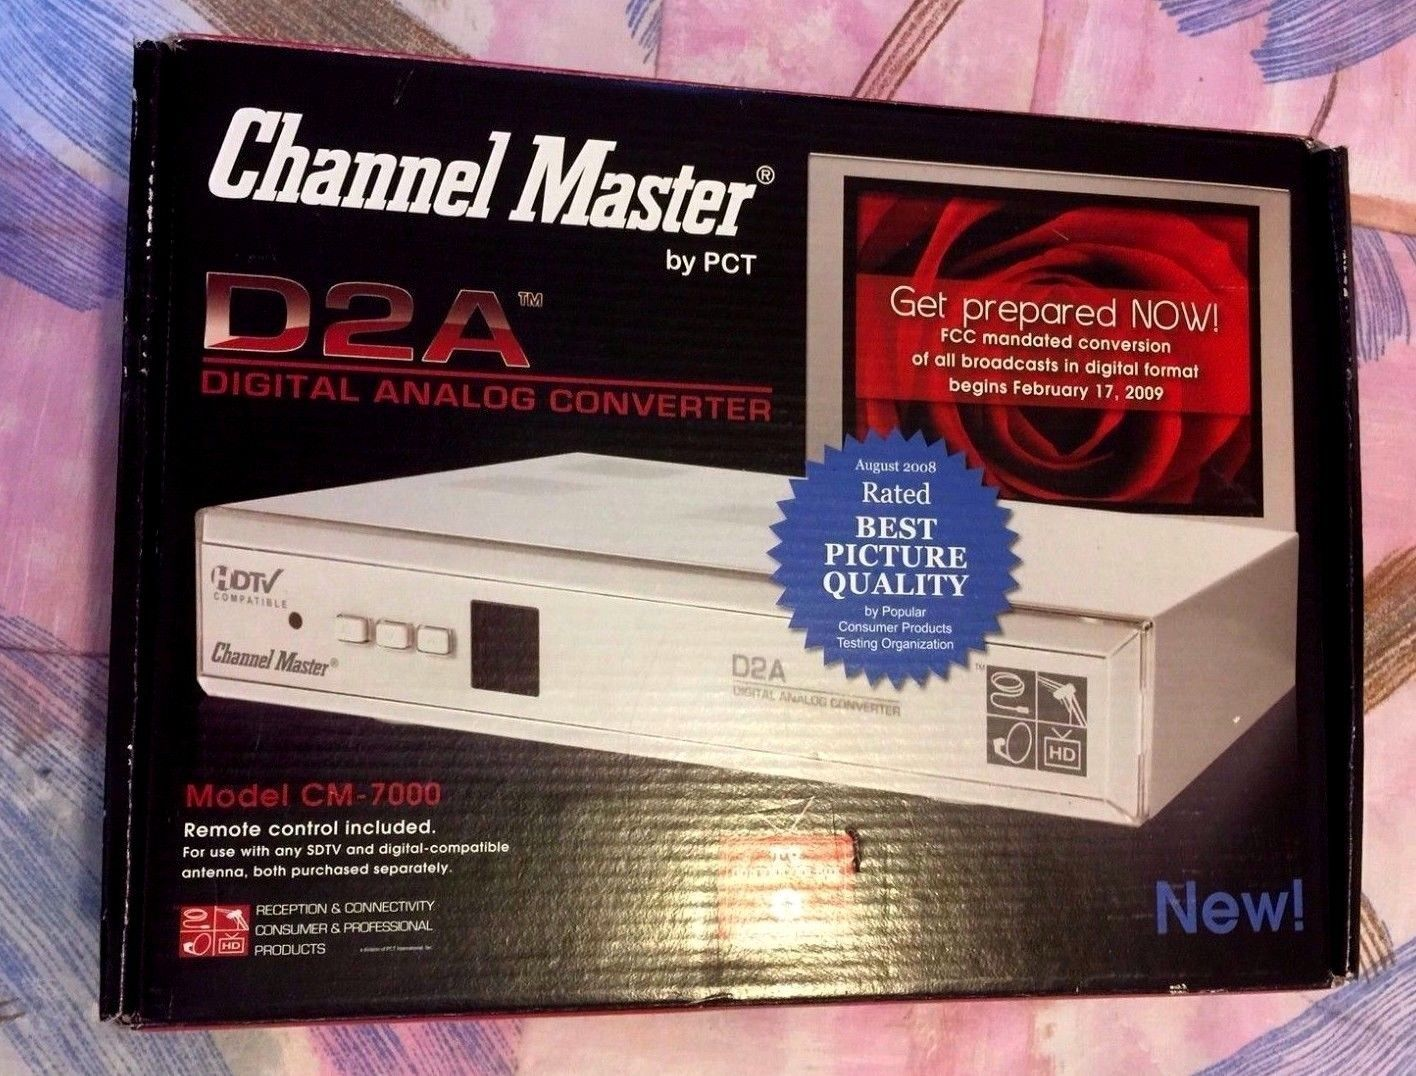 Primary image for Channel Master PCT D2A Digital to Analog TV Converter CM-7000  in the  Box